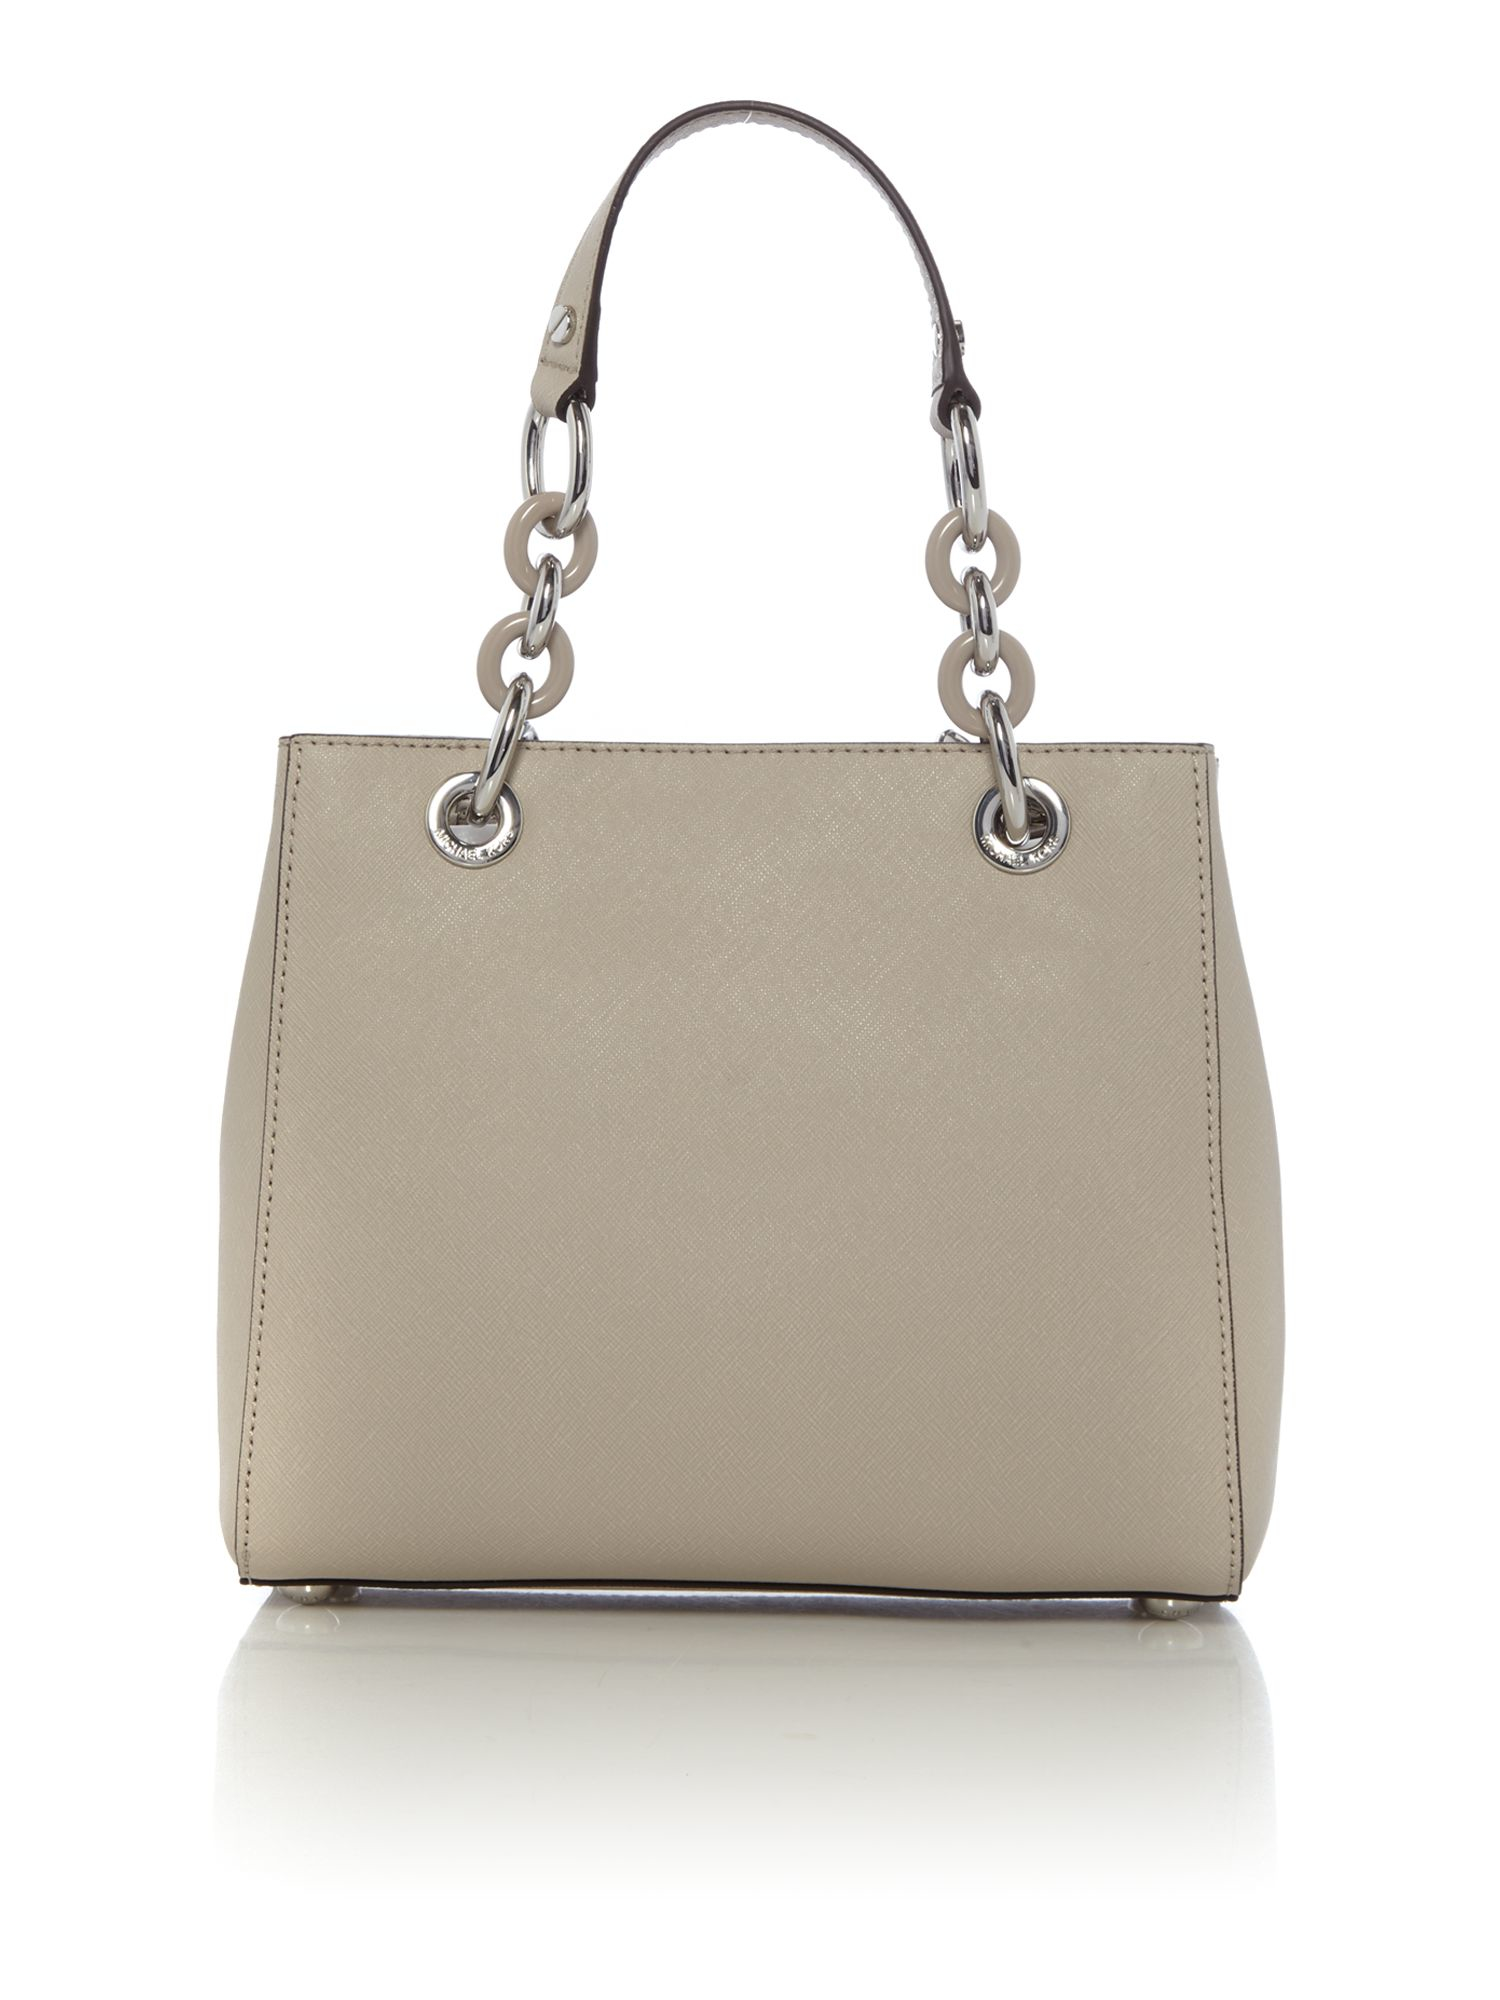 3dae3ac97c22c2 Michael Kors Small Grey Tote Bag | Stanford Center for Opportunity ...